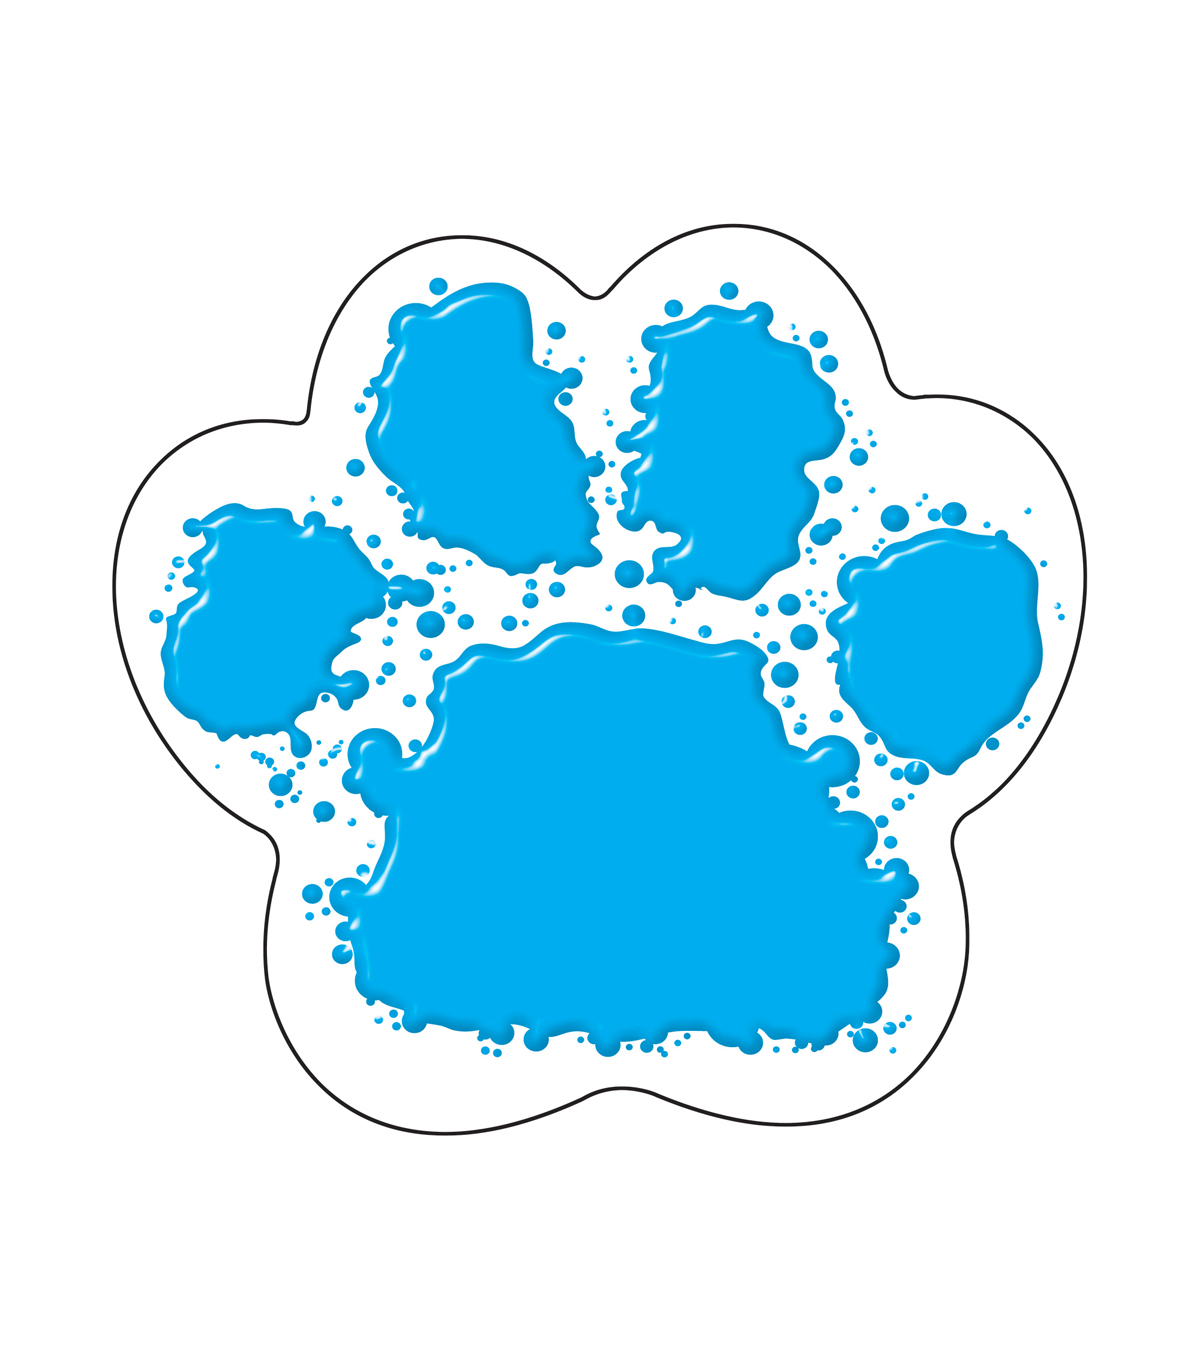 Paw Print Classic Accents, 36 Per Pack, 6 Packs